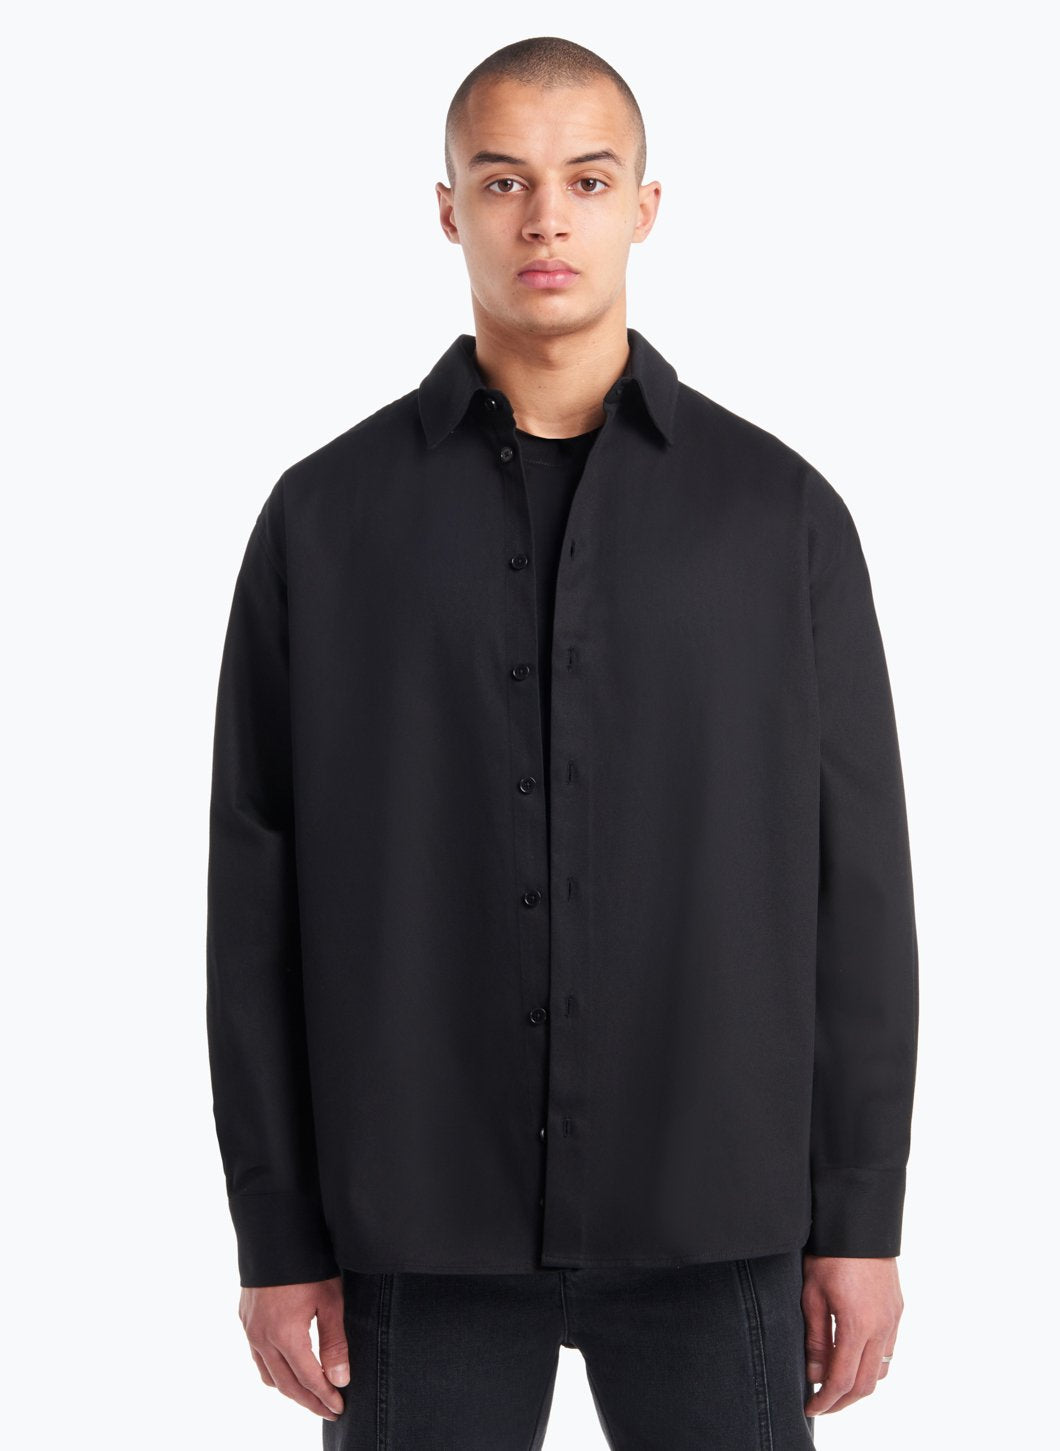 Classic Collar Overshirt in Black Gabardine